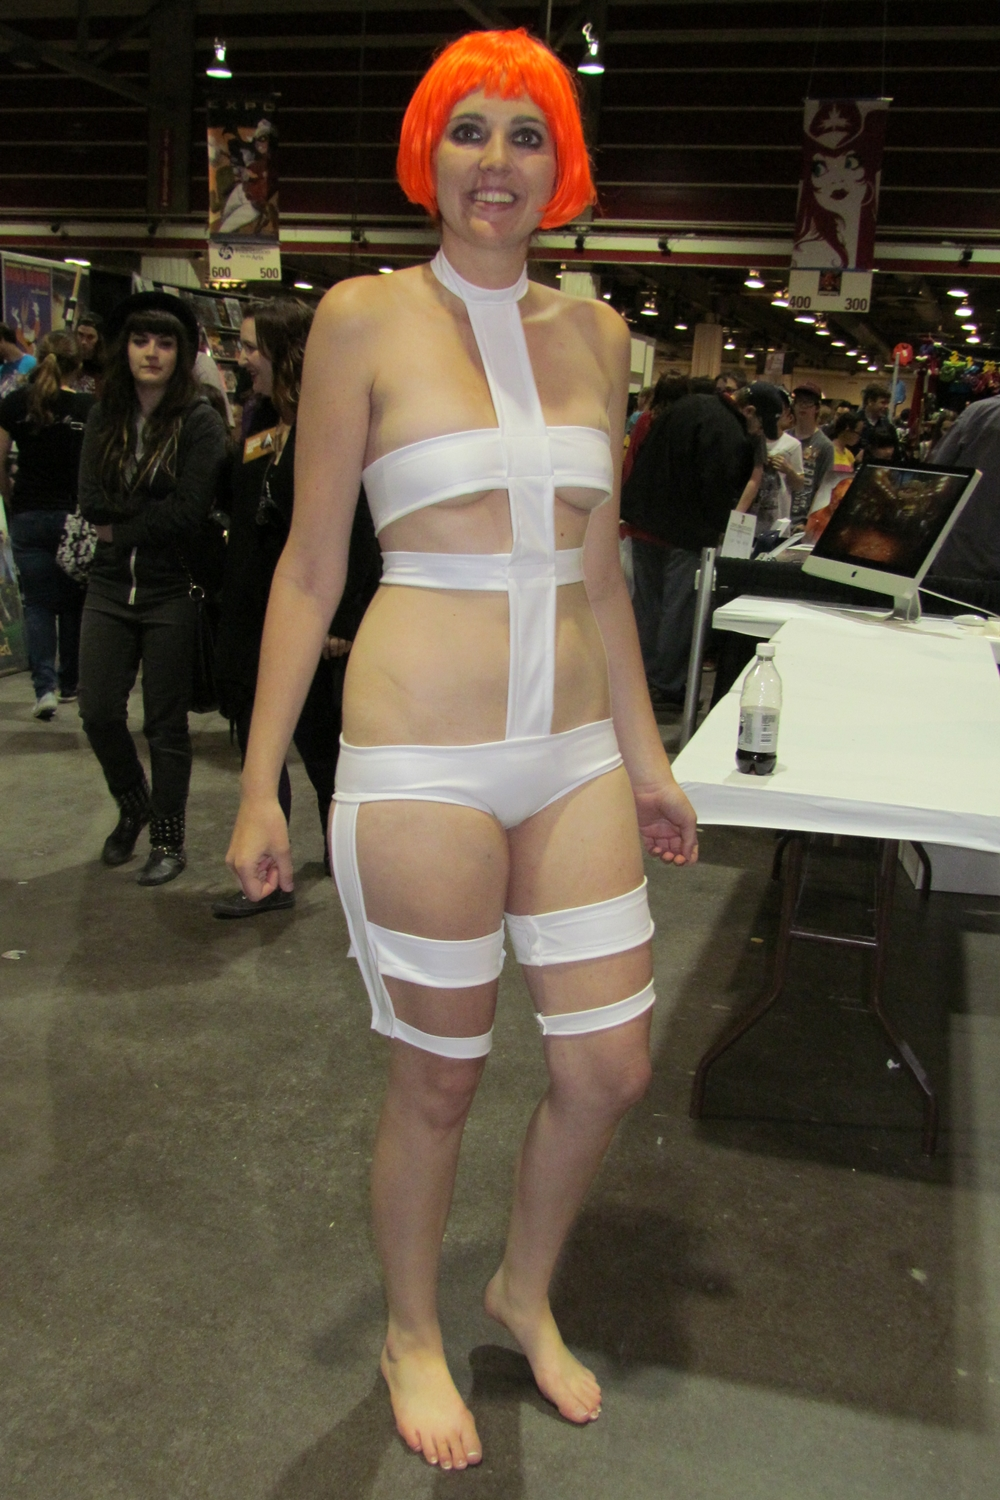 File:Leeloo from The Fifth Element.jpg - Wikimedia Commons: http://commons.wikimedia.org/wiki/File:Leeloo_from_The_Fifth_Element.jpg